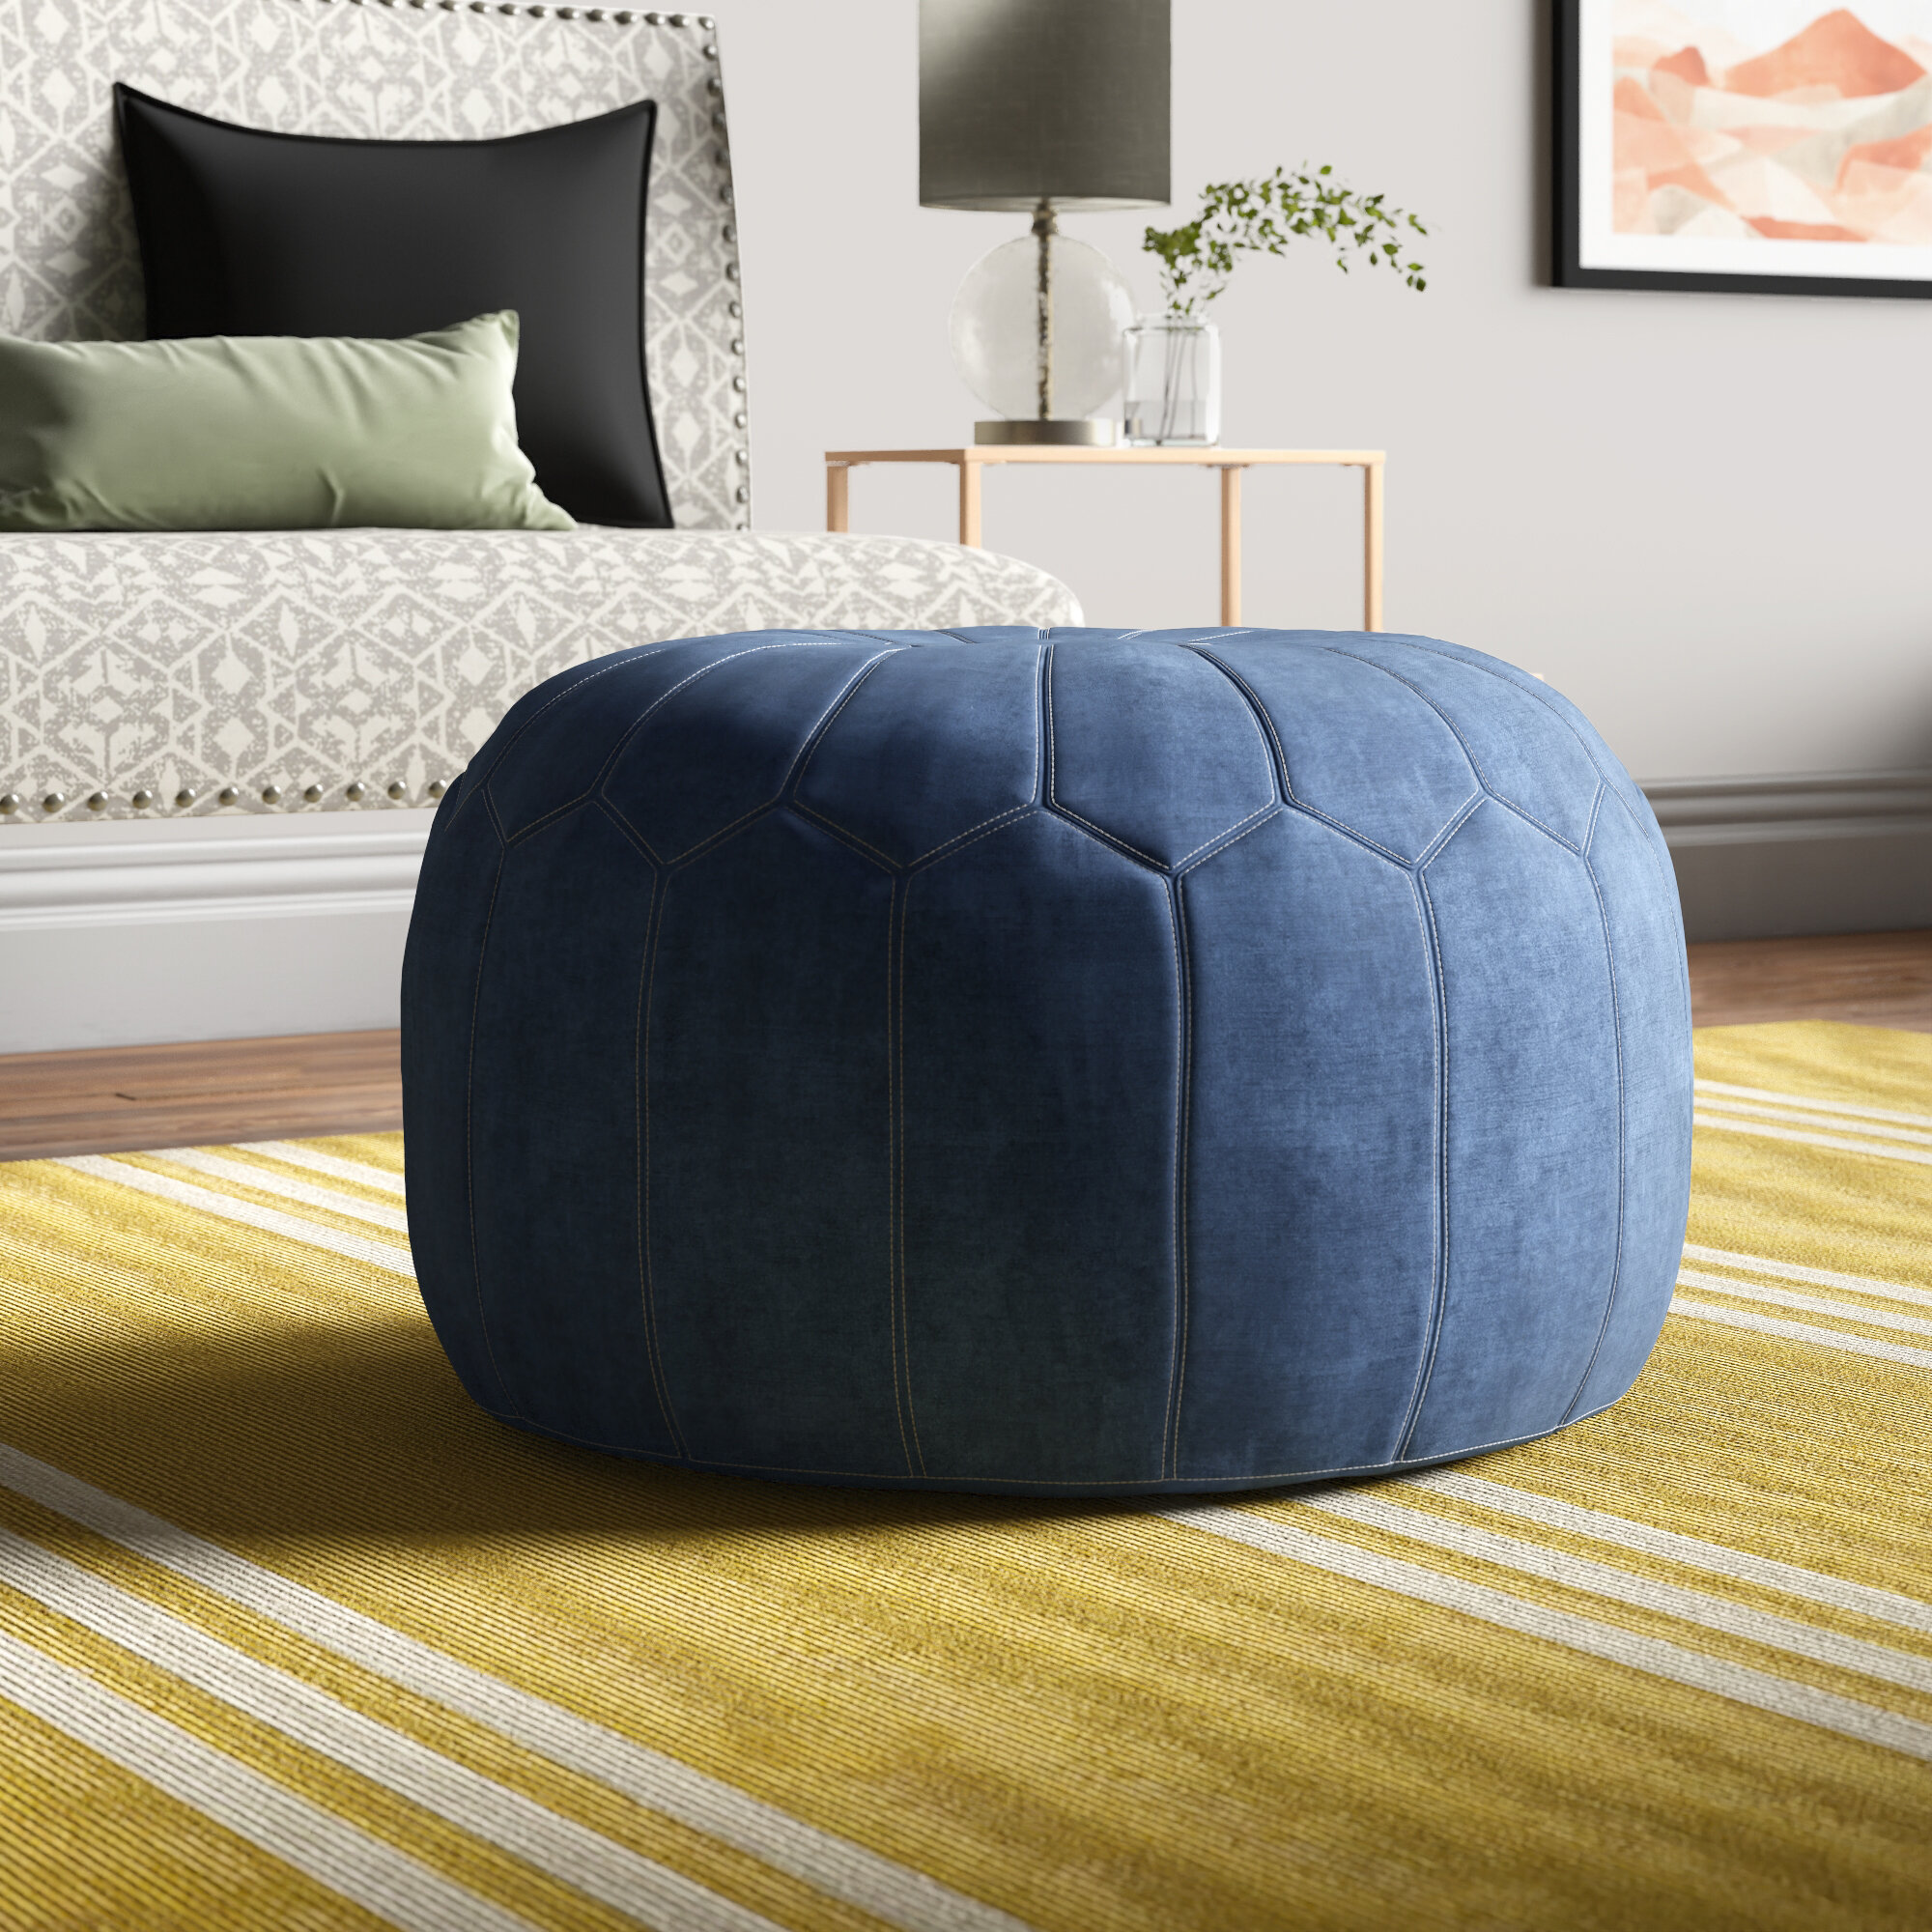 Poufs Free Shipping Over 35 Wayfair